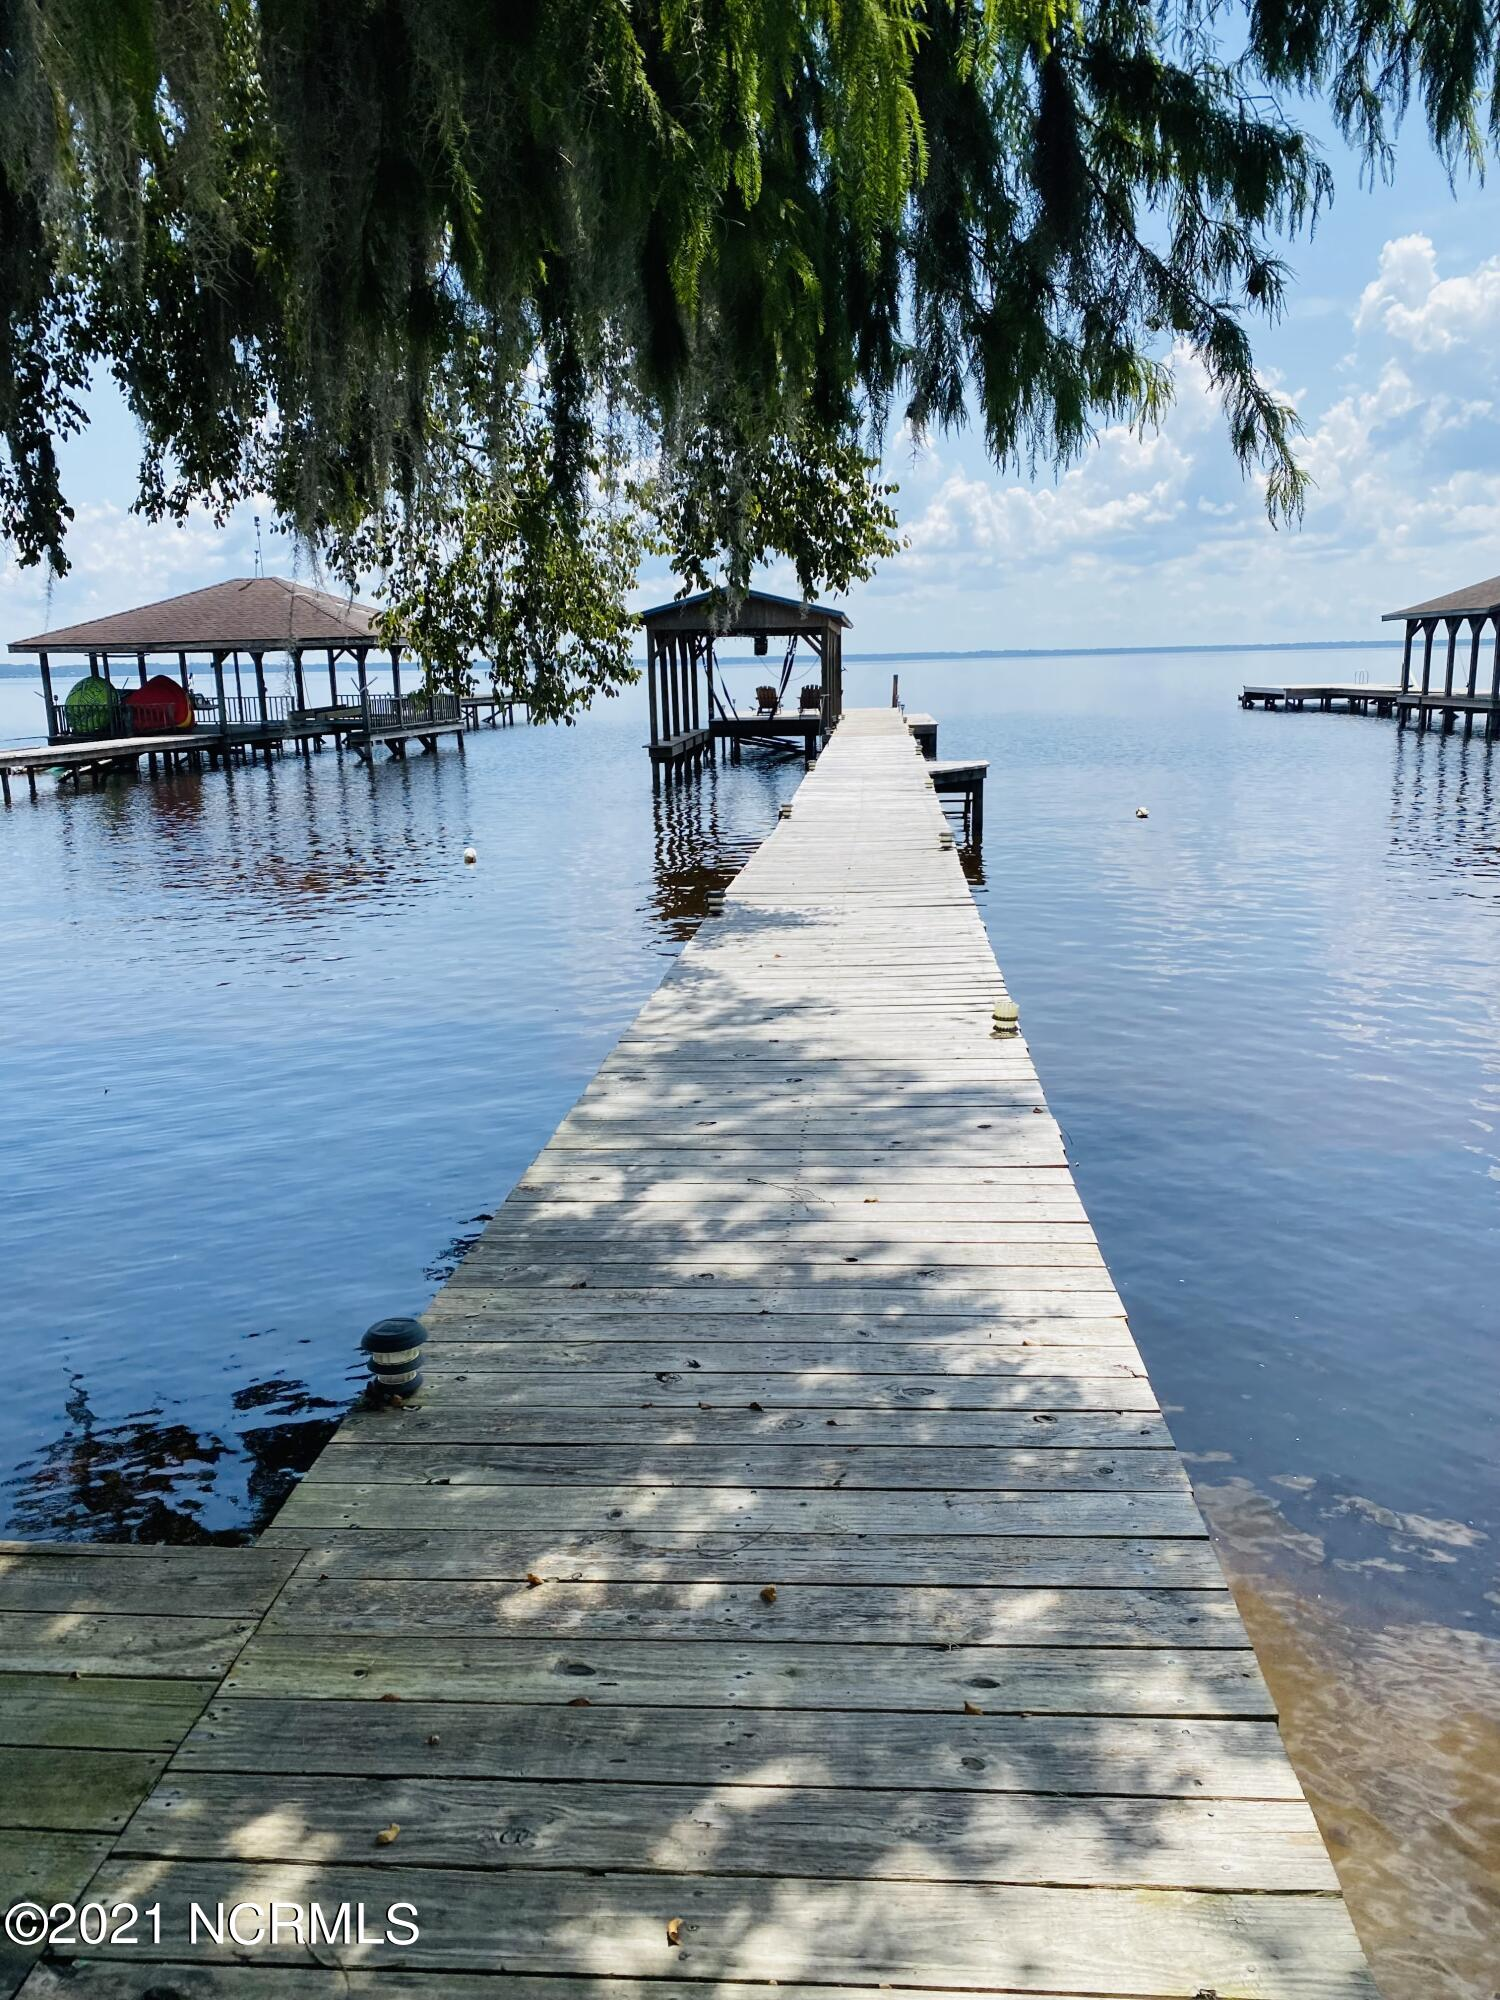 1912 Canal Cove Road, Lake Waccamaw, North Carolina 28450, 2 Bedrooms Bedrooms, 3 Rooms Rooms,1 BathroomBathrooms,Single family residence,For sale,Canal Cove,100286430